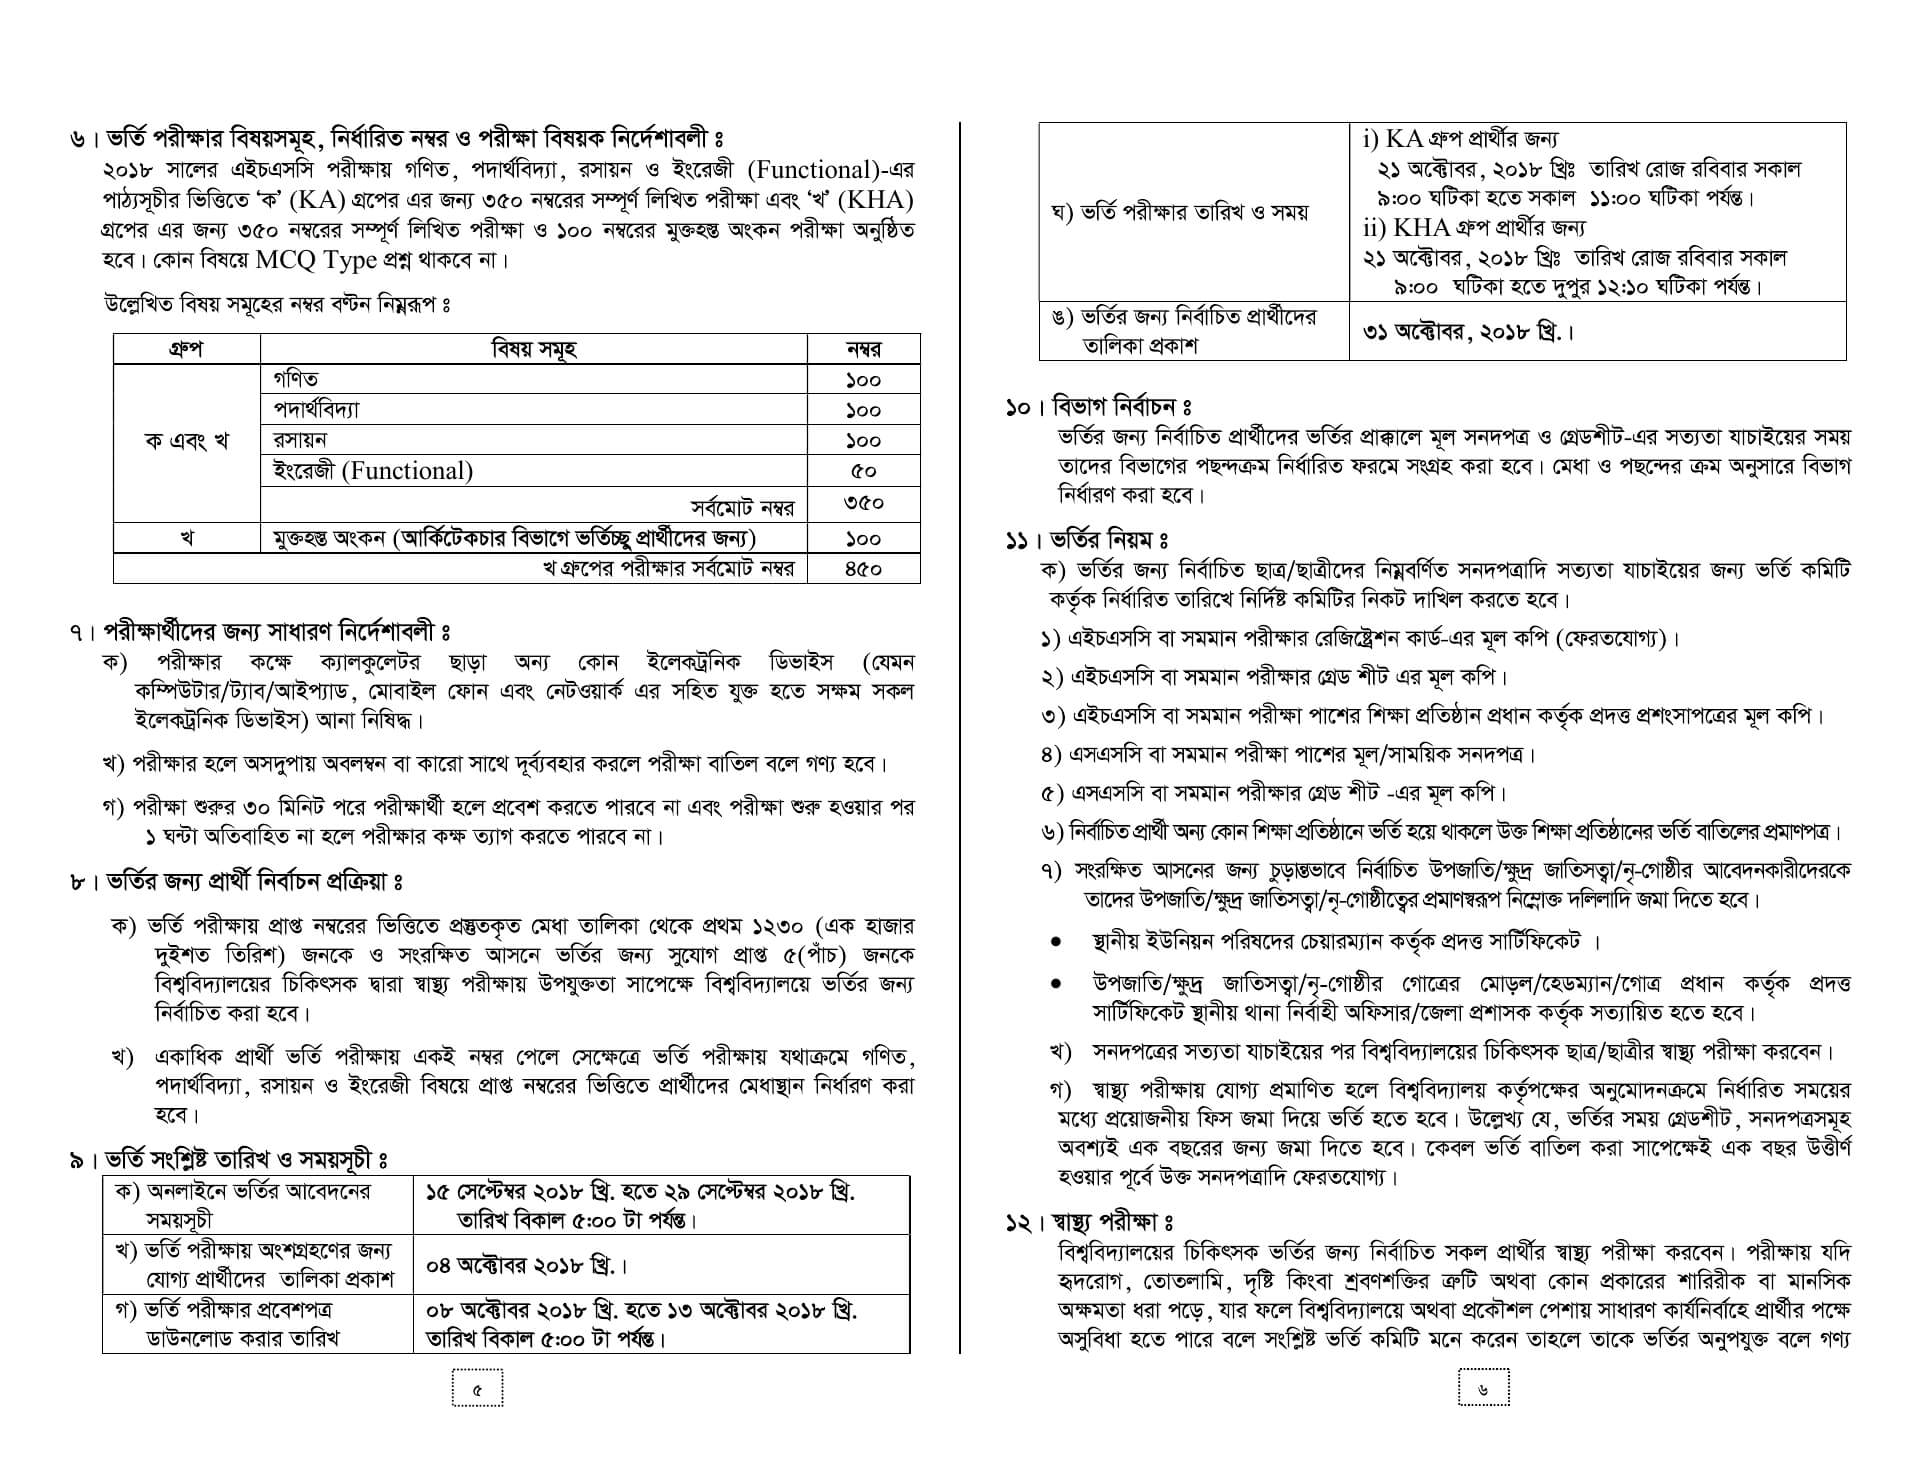 Ruet Admission Guideline-2